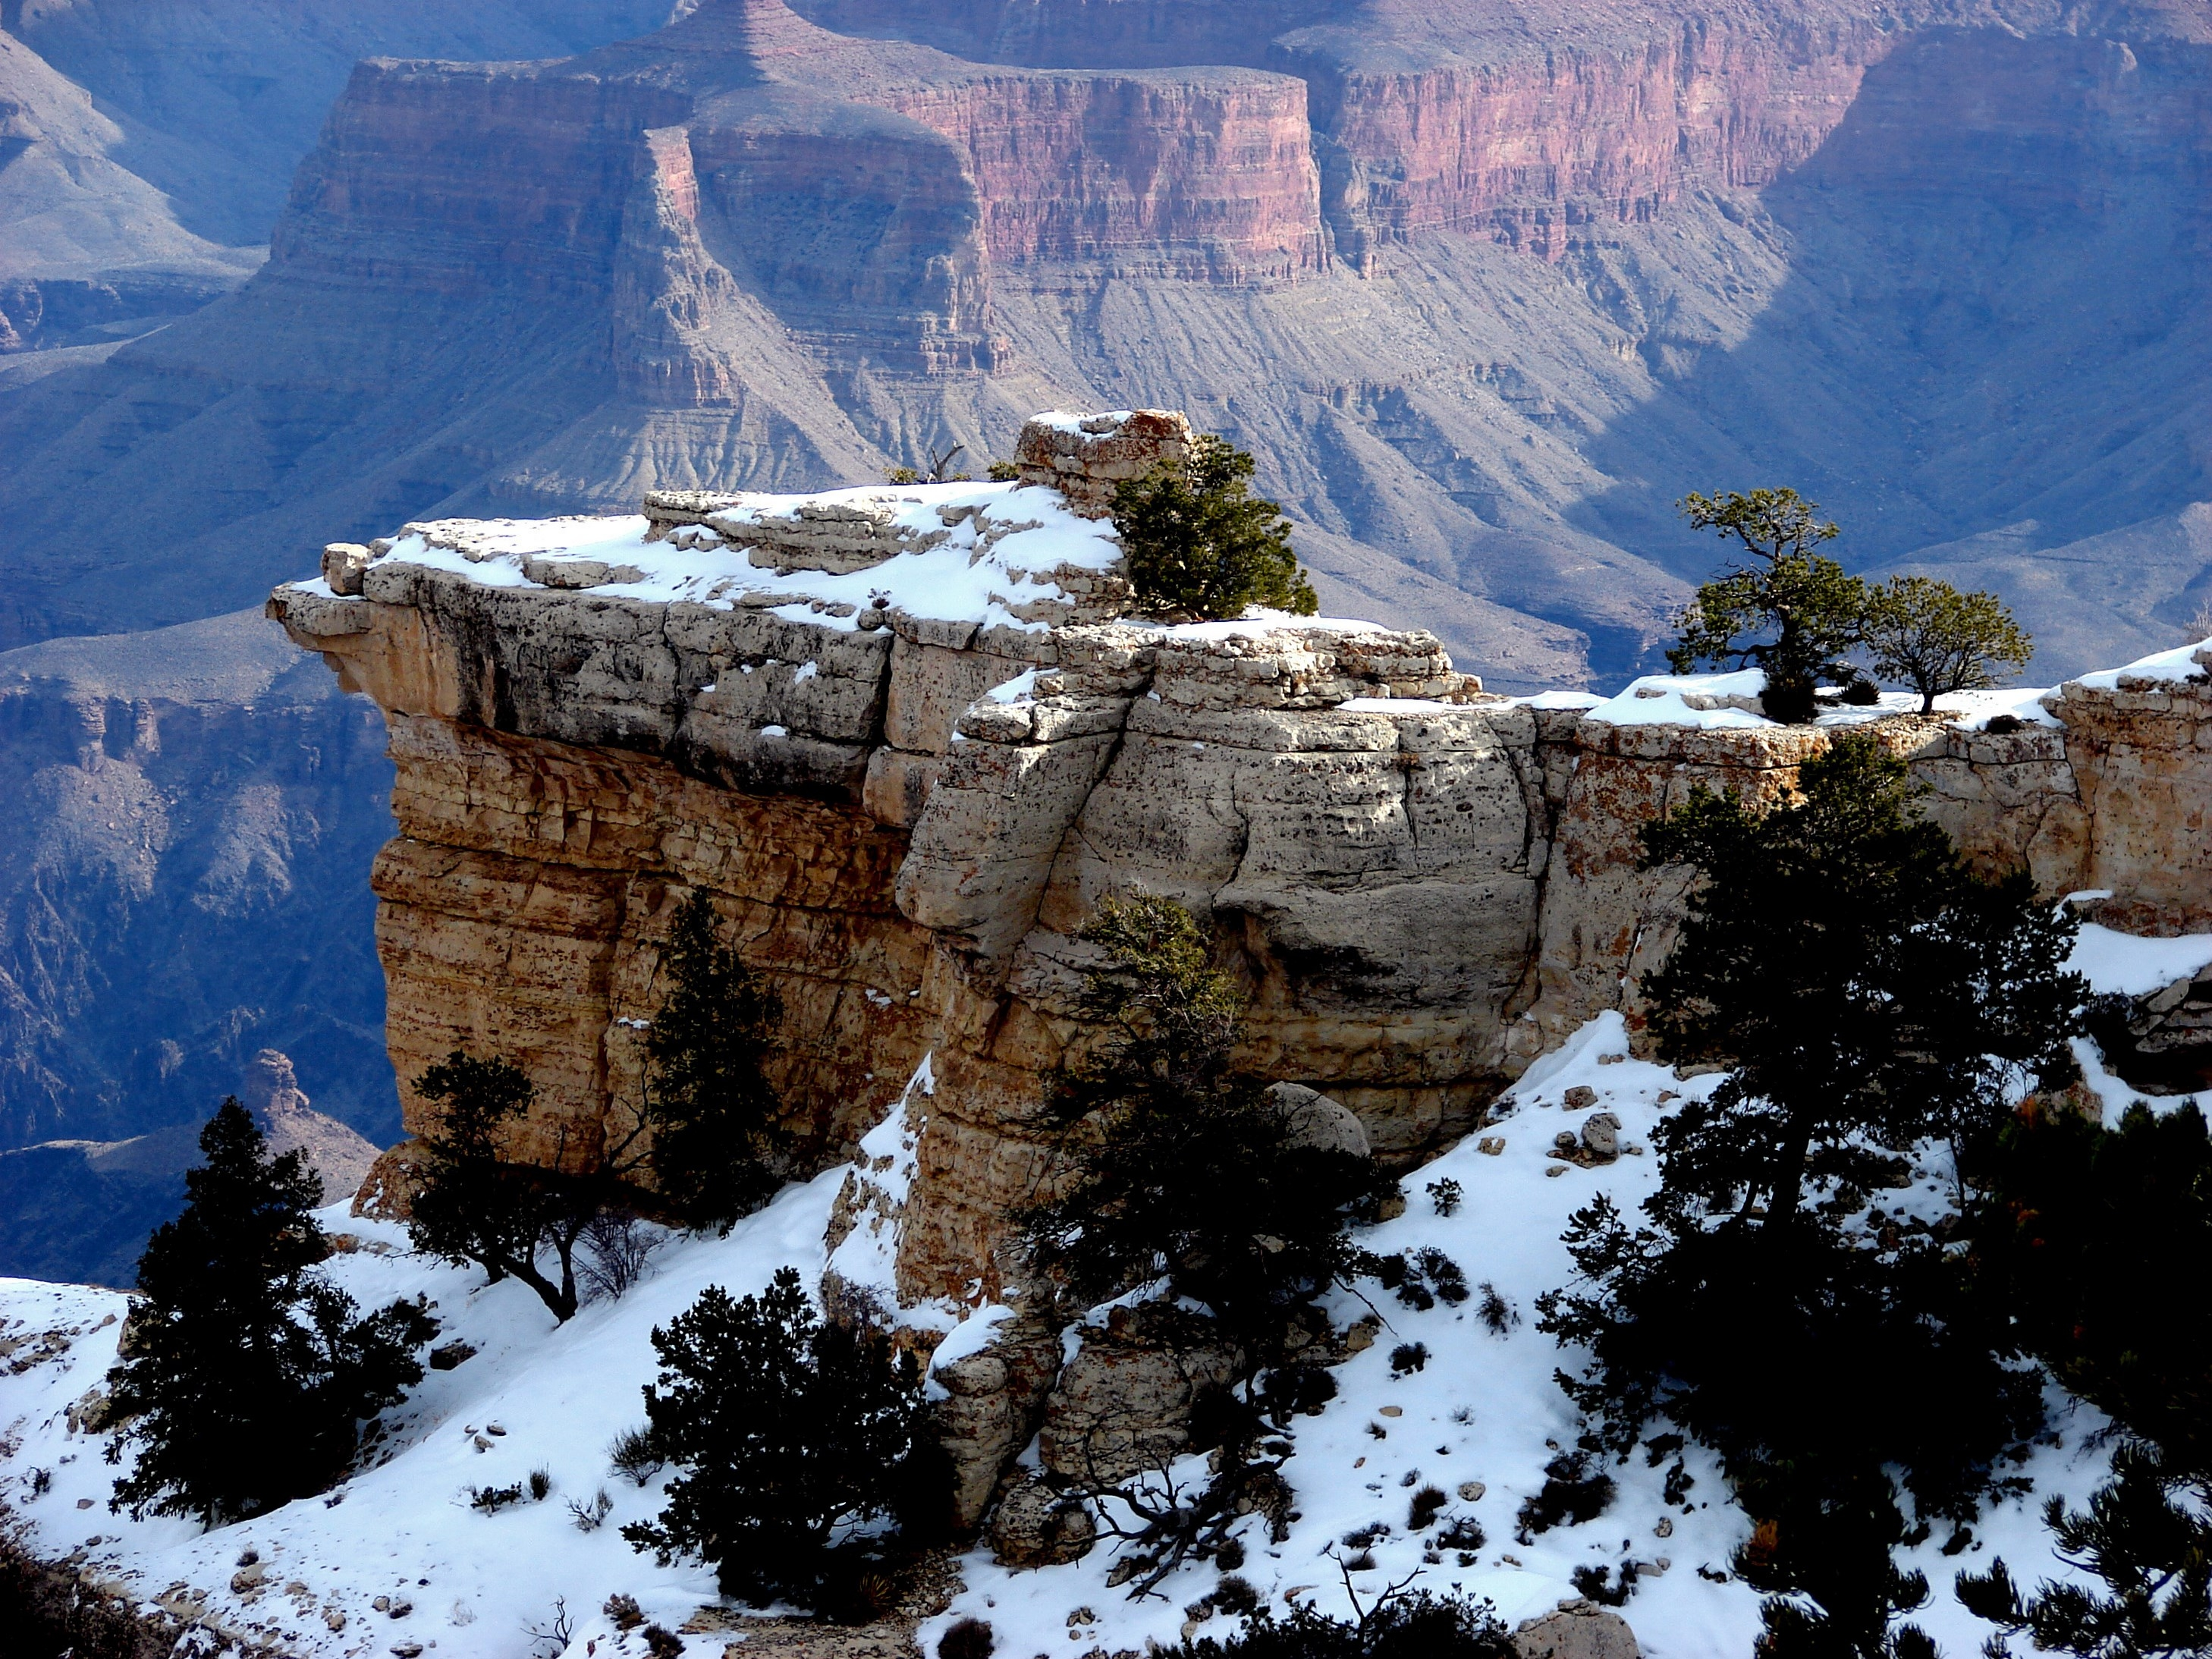 65031 download wallpaper Nature, Rocks, Snow, Trees, Mountains, Landscape screensavers and pictures for free